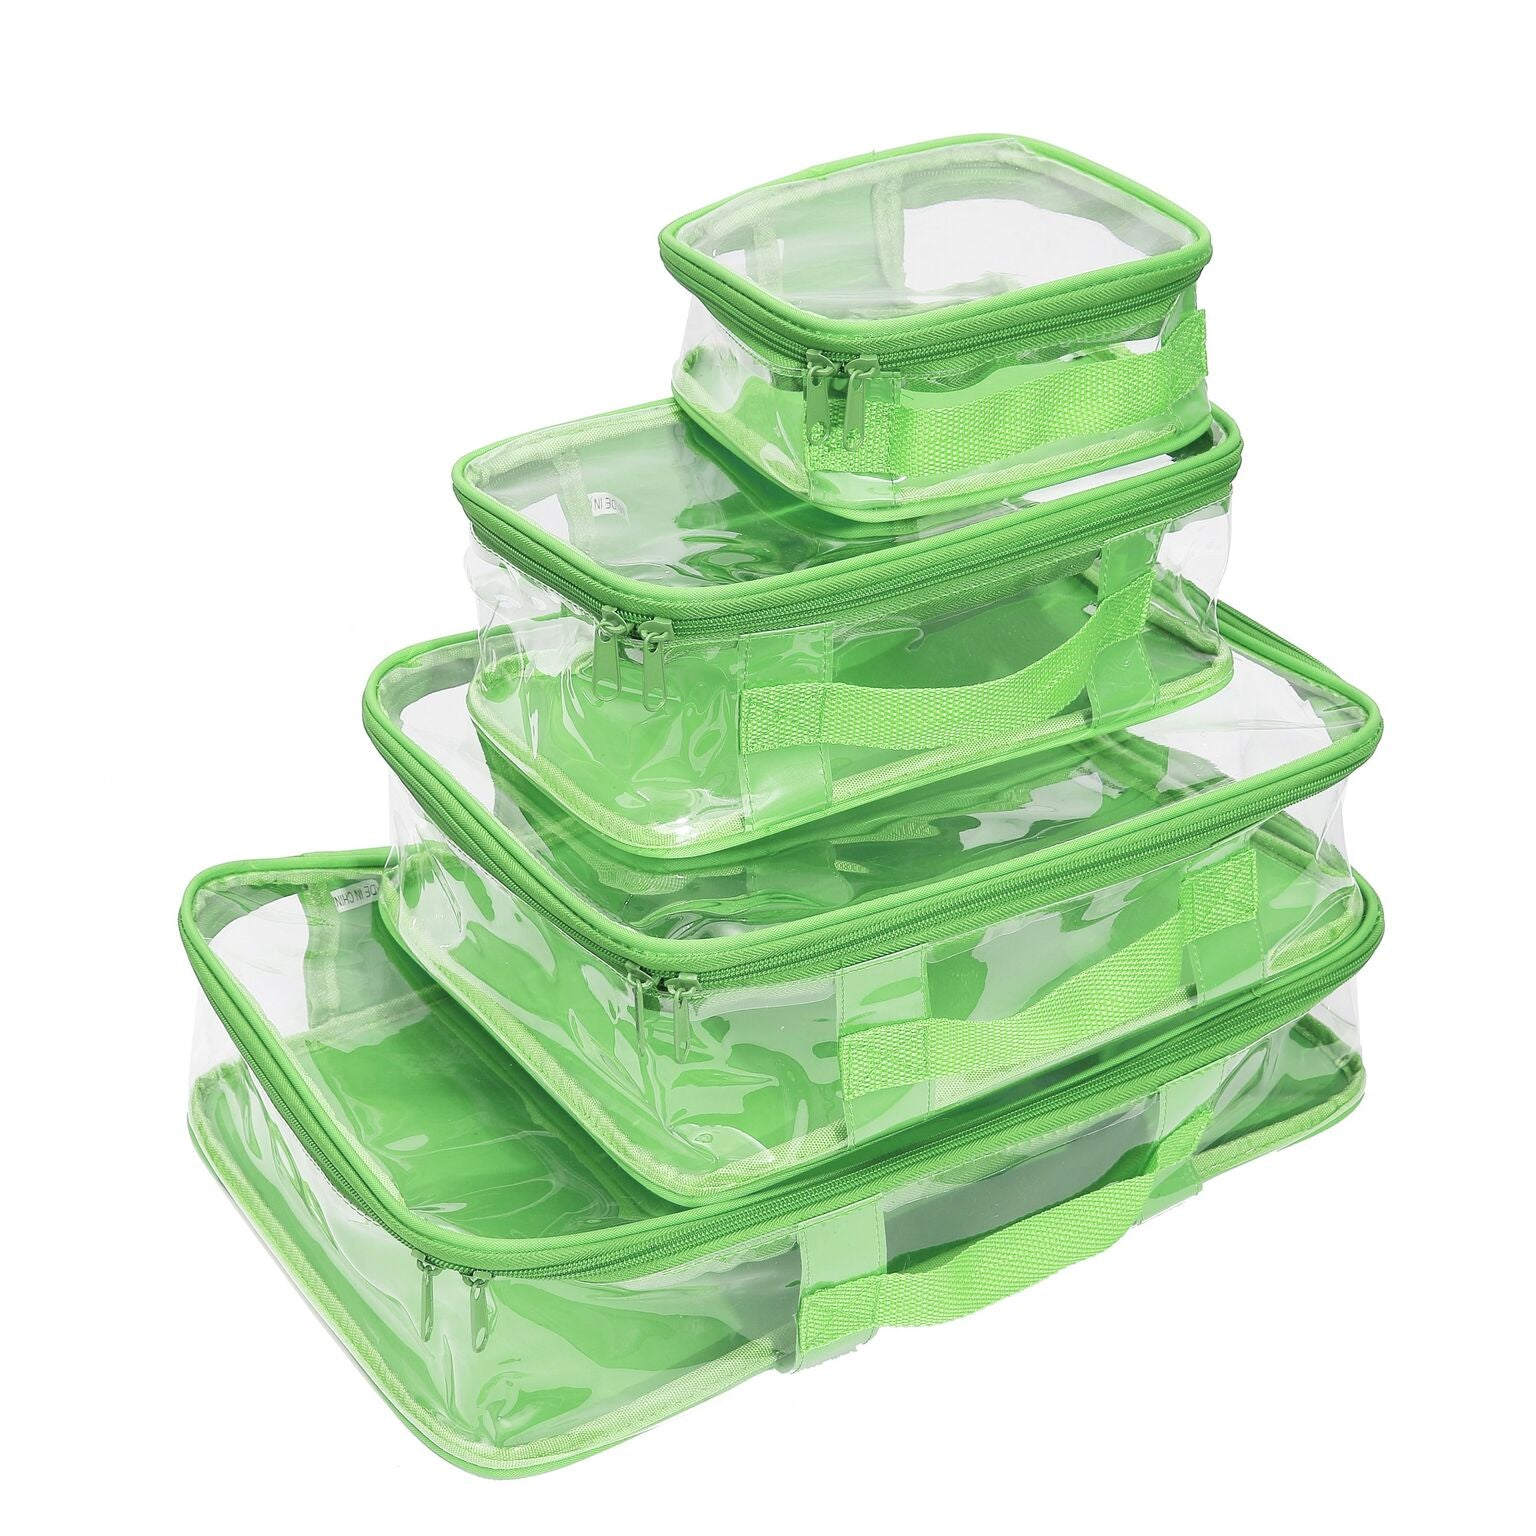 Packing cube set in green